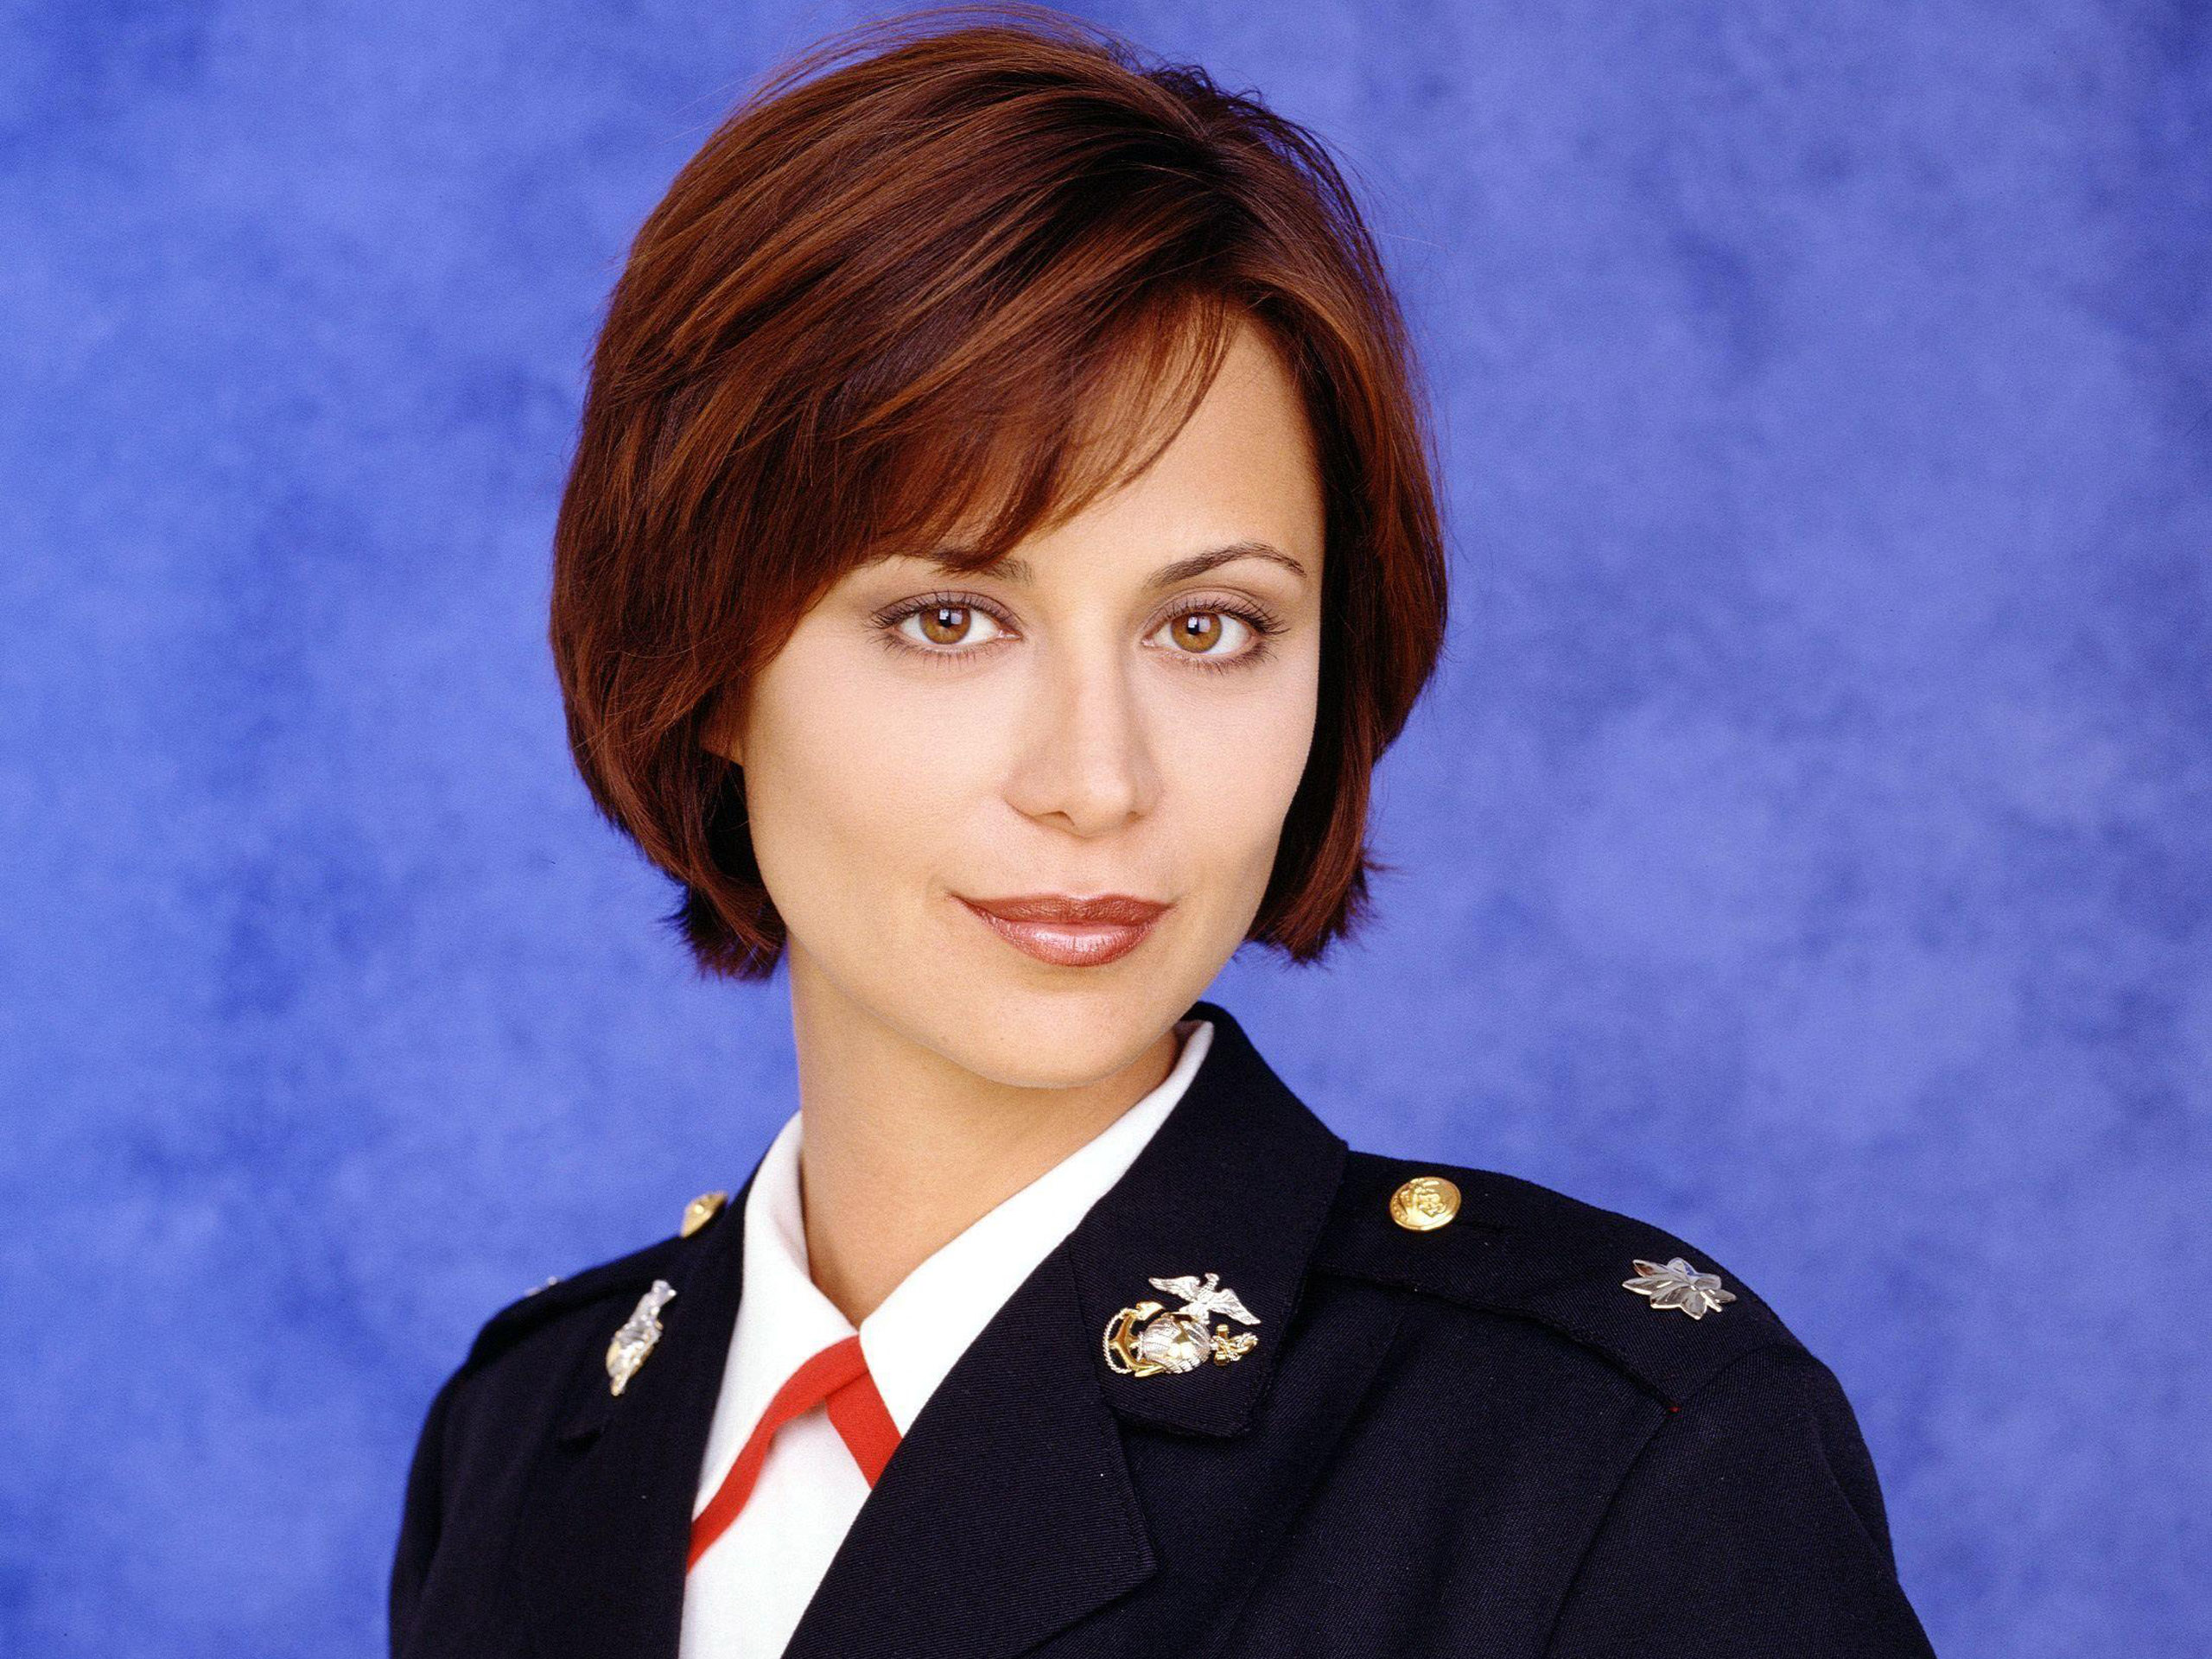 catherine bell 42184